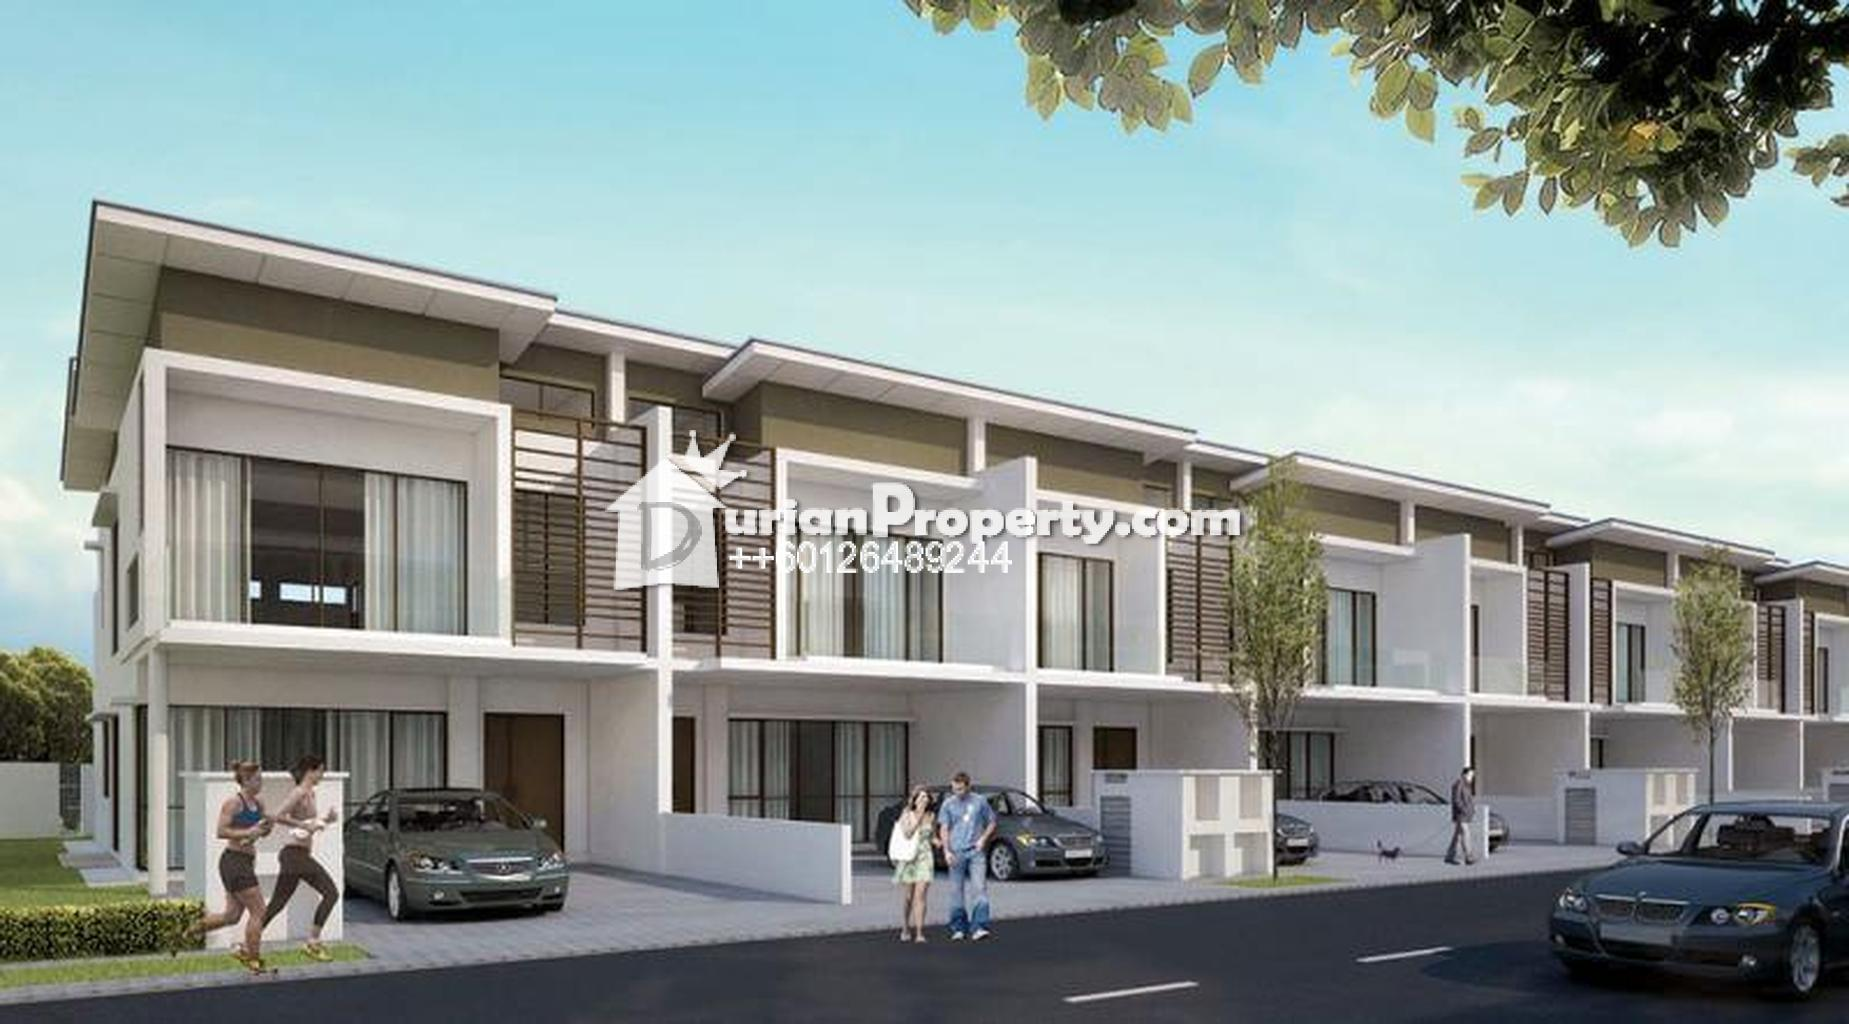 Terrace house for sale at cita damansara sunway damansara for The terrace land and house